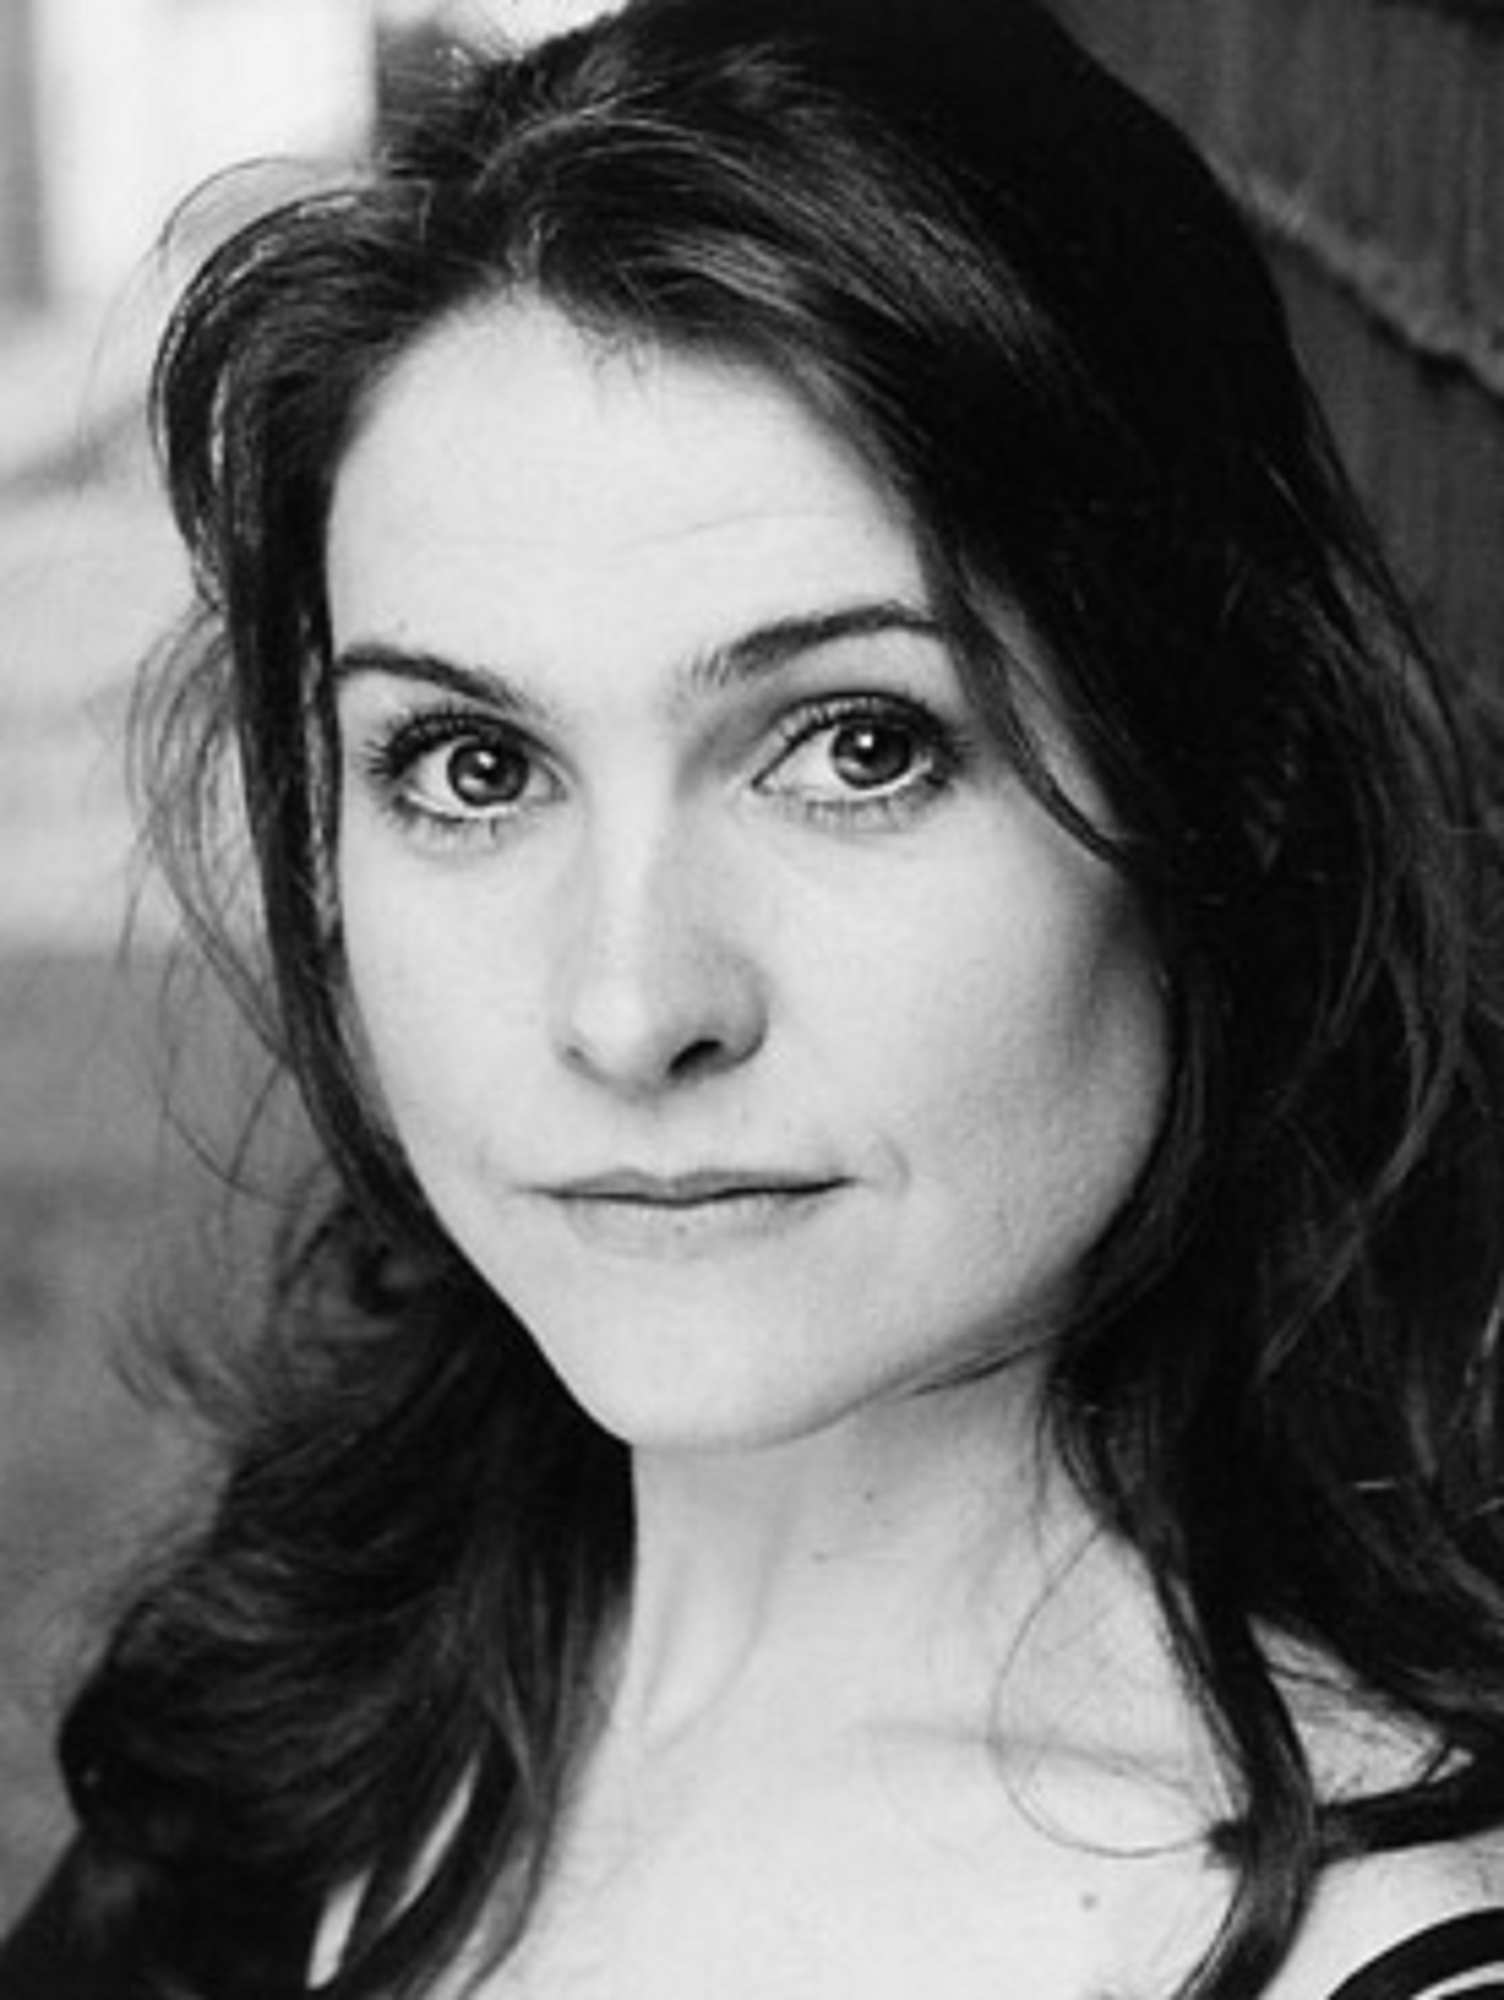 Gillian Kearney naked (82 photo), Tits, Cleavage, Instagram, lingerie 2006